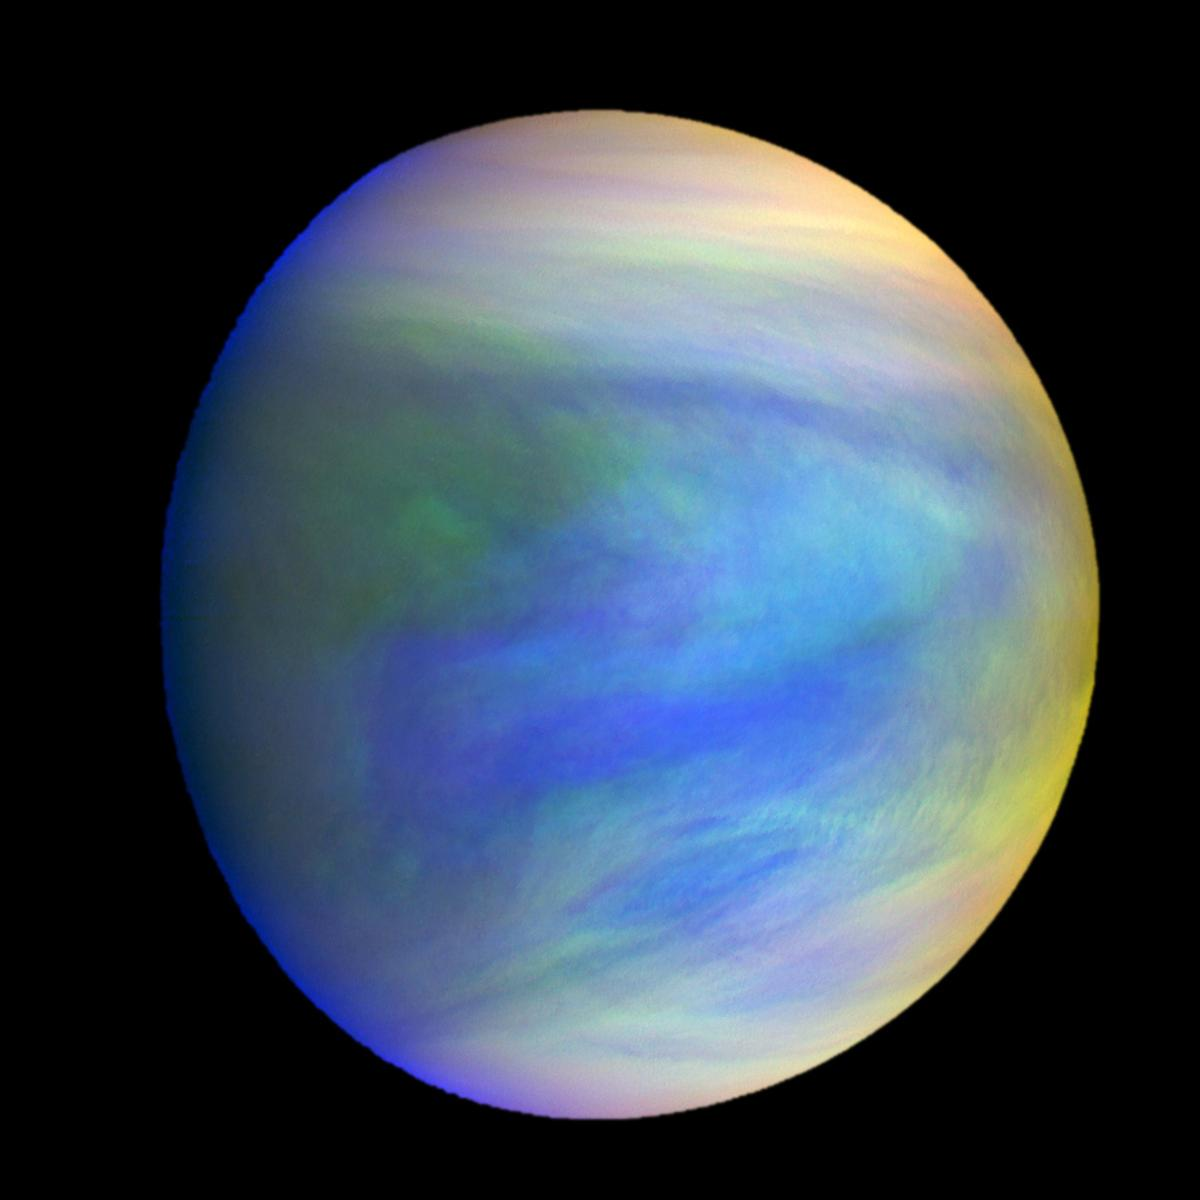 A composite image of the planet Venus showing the mysterious clouds that could be home to microbial life,as seen by the Japanese probe Akatsuki